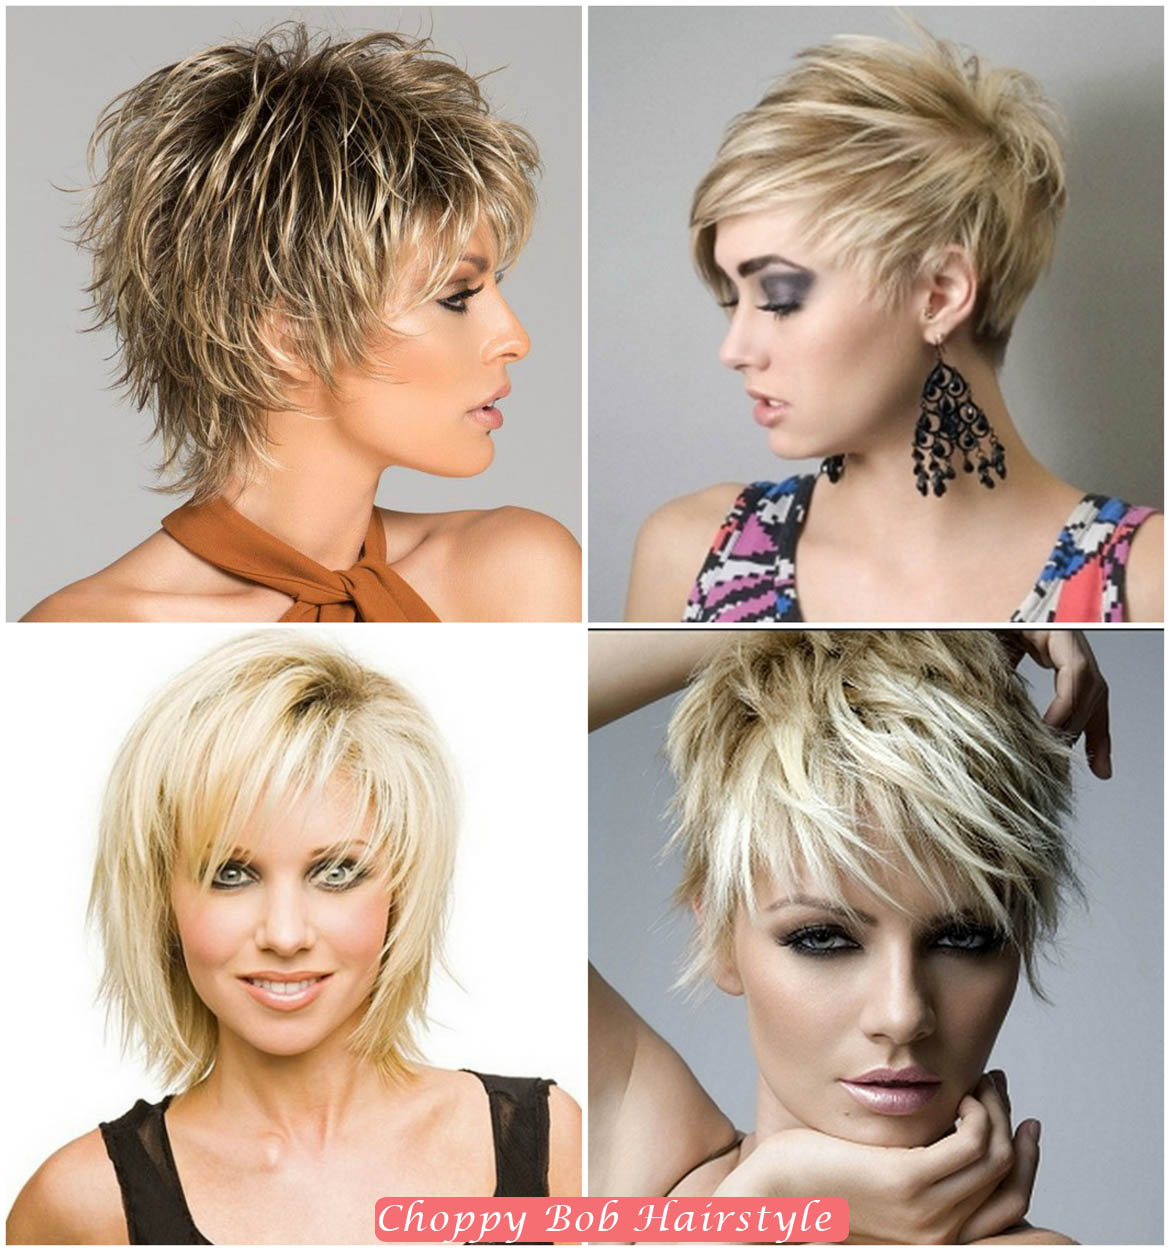 Choppy Bob Hair Cut | Bob Hairstyles for Women